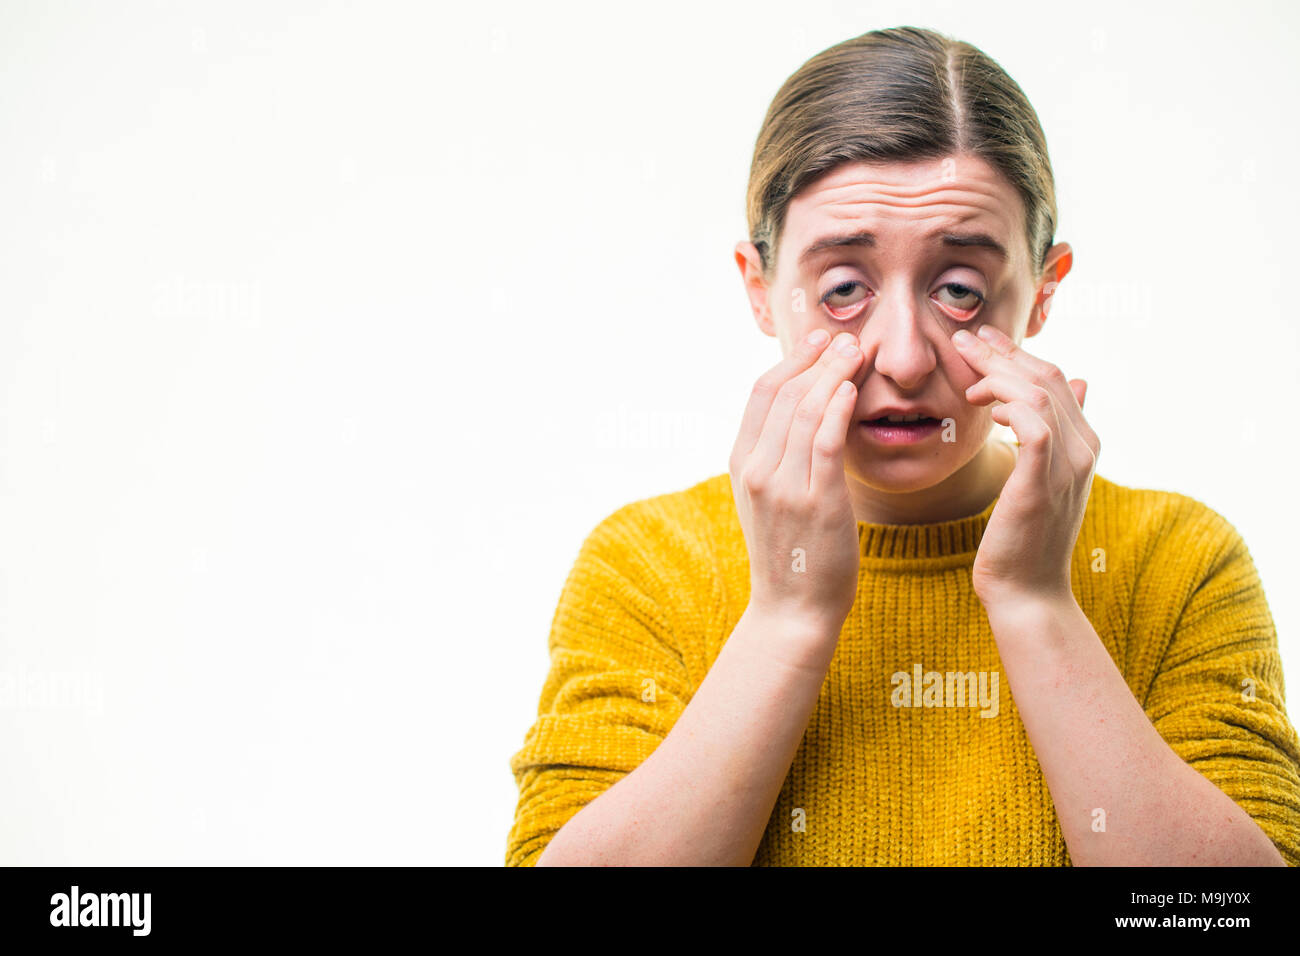 A young Caucasian woman girl feeling and looking unwell sick hungover,  pulling her eyelids down, shot against a white background, UK - Stock Image